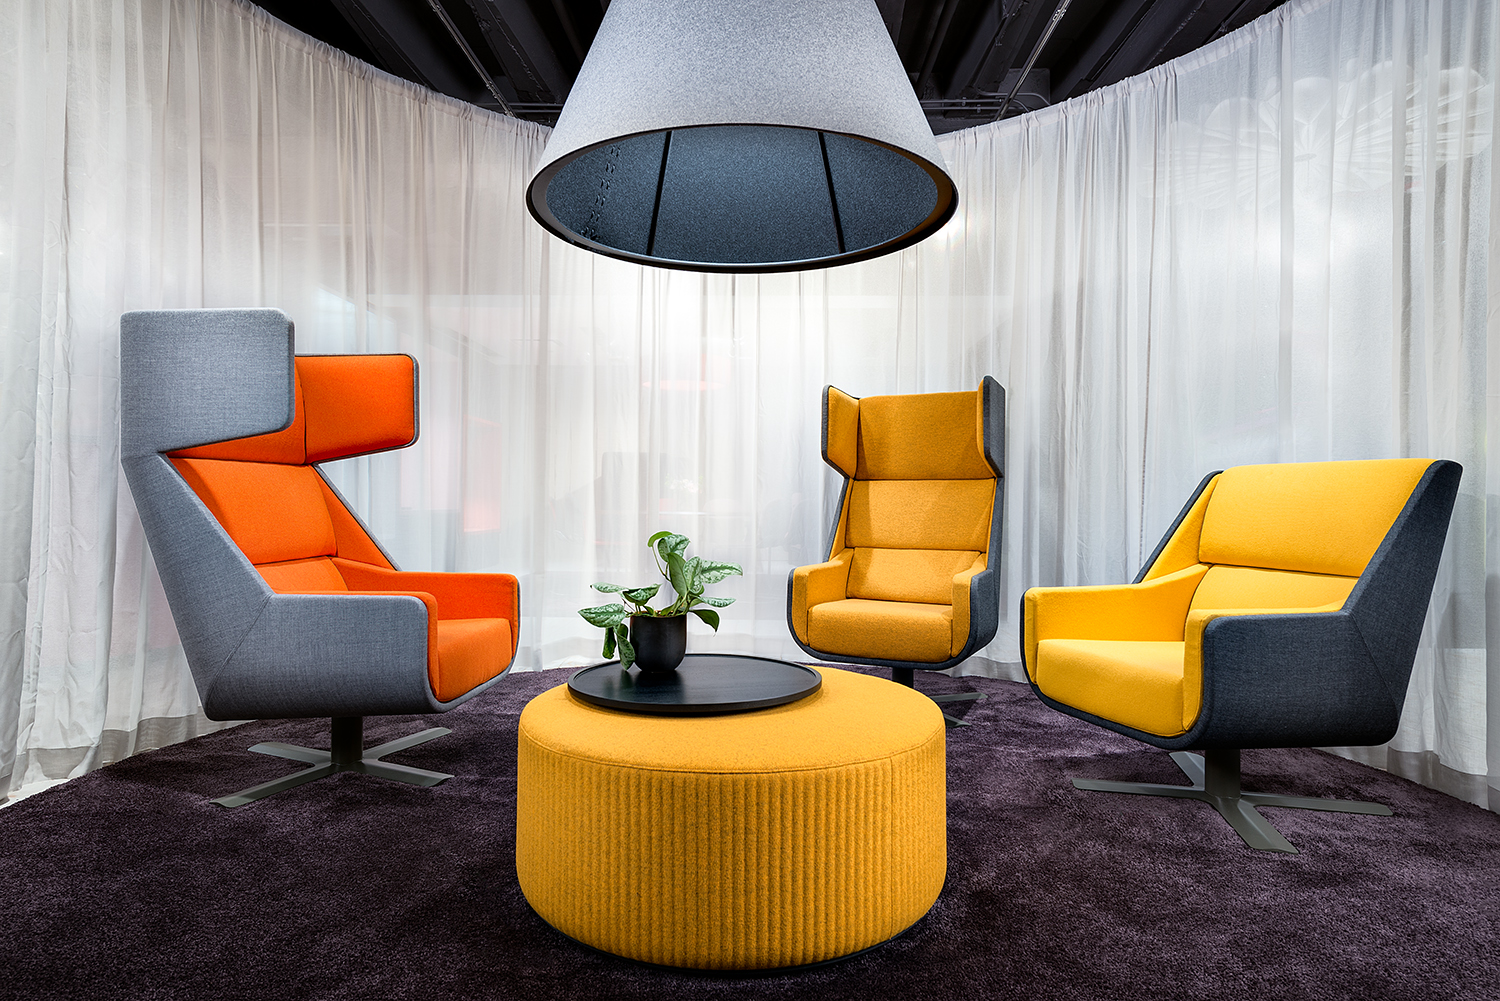 Buzzi & Buzzi Lighting buzzi space at neocon 2018 - cdd ®: official website